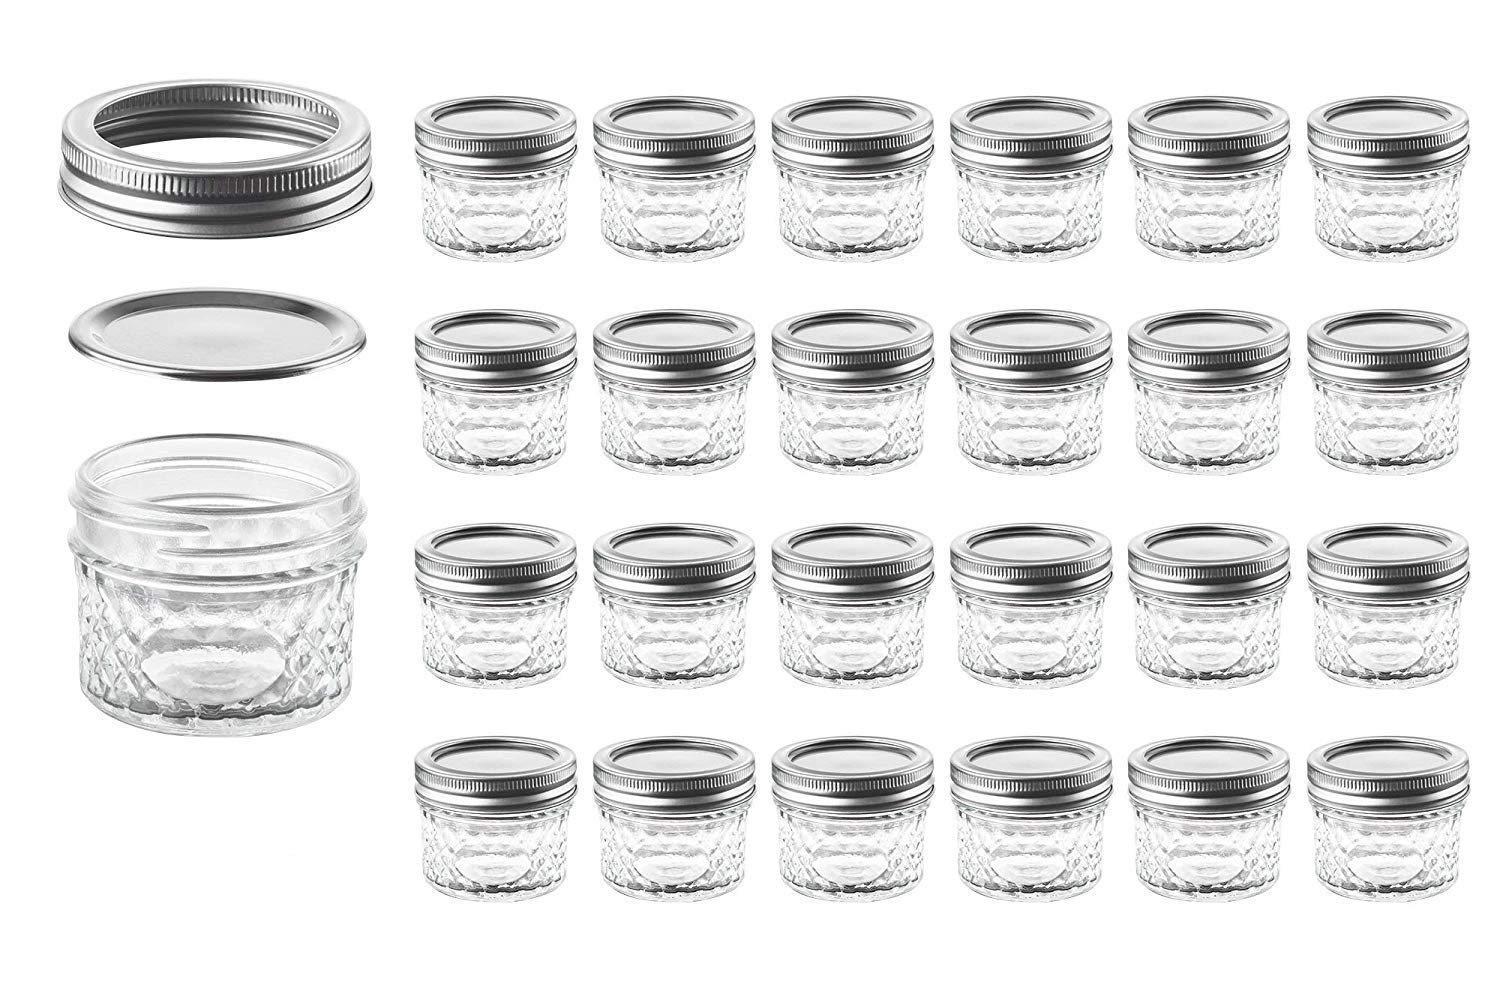 Mason Jars with Glass Lids 4 oz - Nellam Small Canning Jelly Jar Wide Mouth in Quilted Crystal for Airtight Kitchen Storage, Baby Food, Party Favors - Freezer & Microwave Safe - Set of 24, Silver